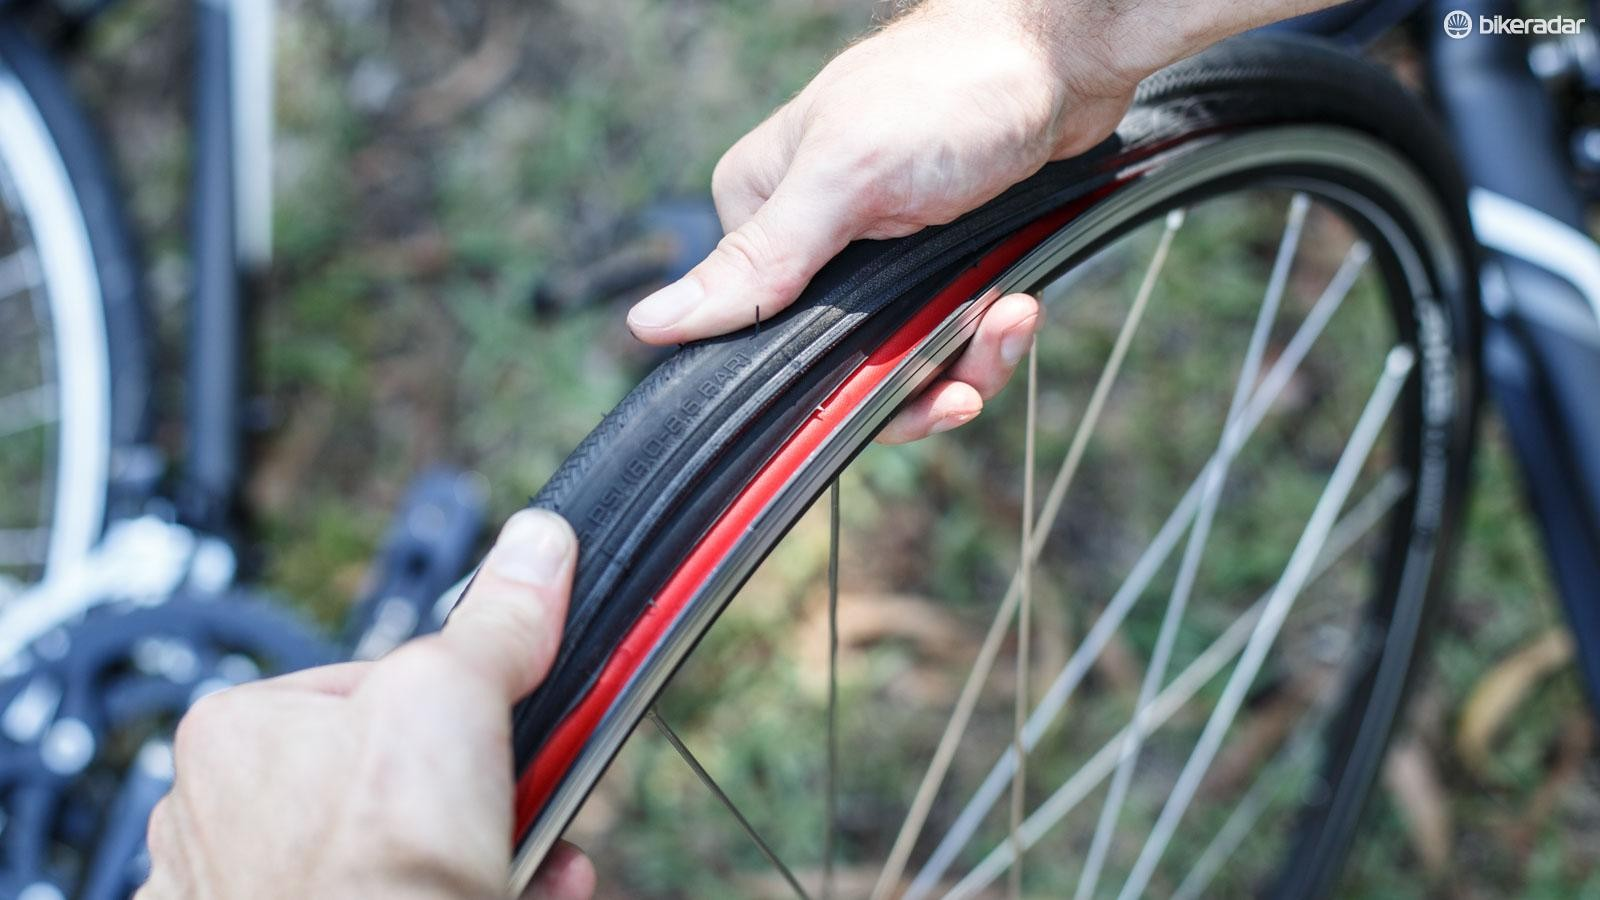 Punctures aren't fun, but with the right tyres they will be a rare occurance and a little knowledge makes them an easy fix